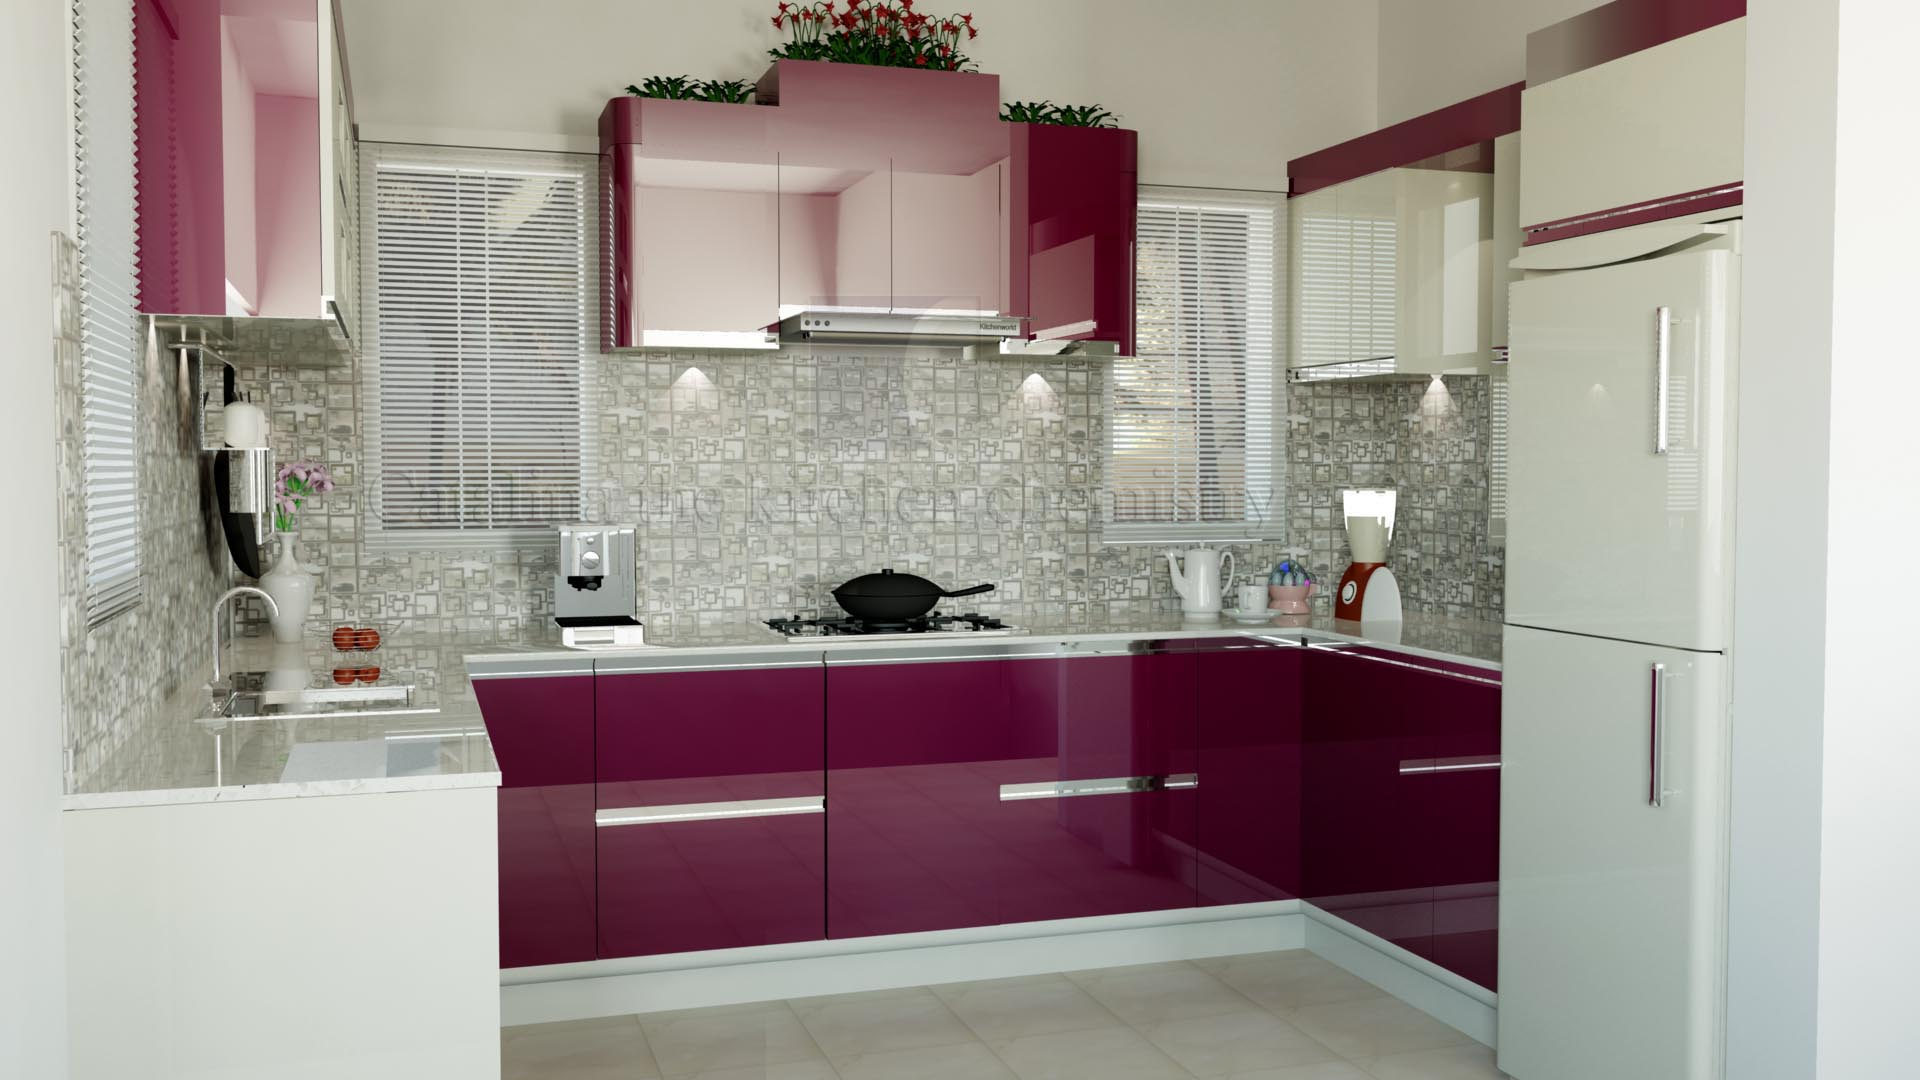 kitchen design pic 25 design ideas of modular kitchen pictures 310